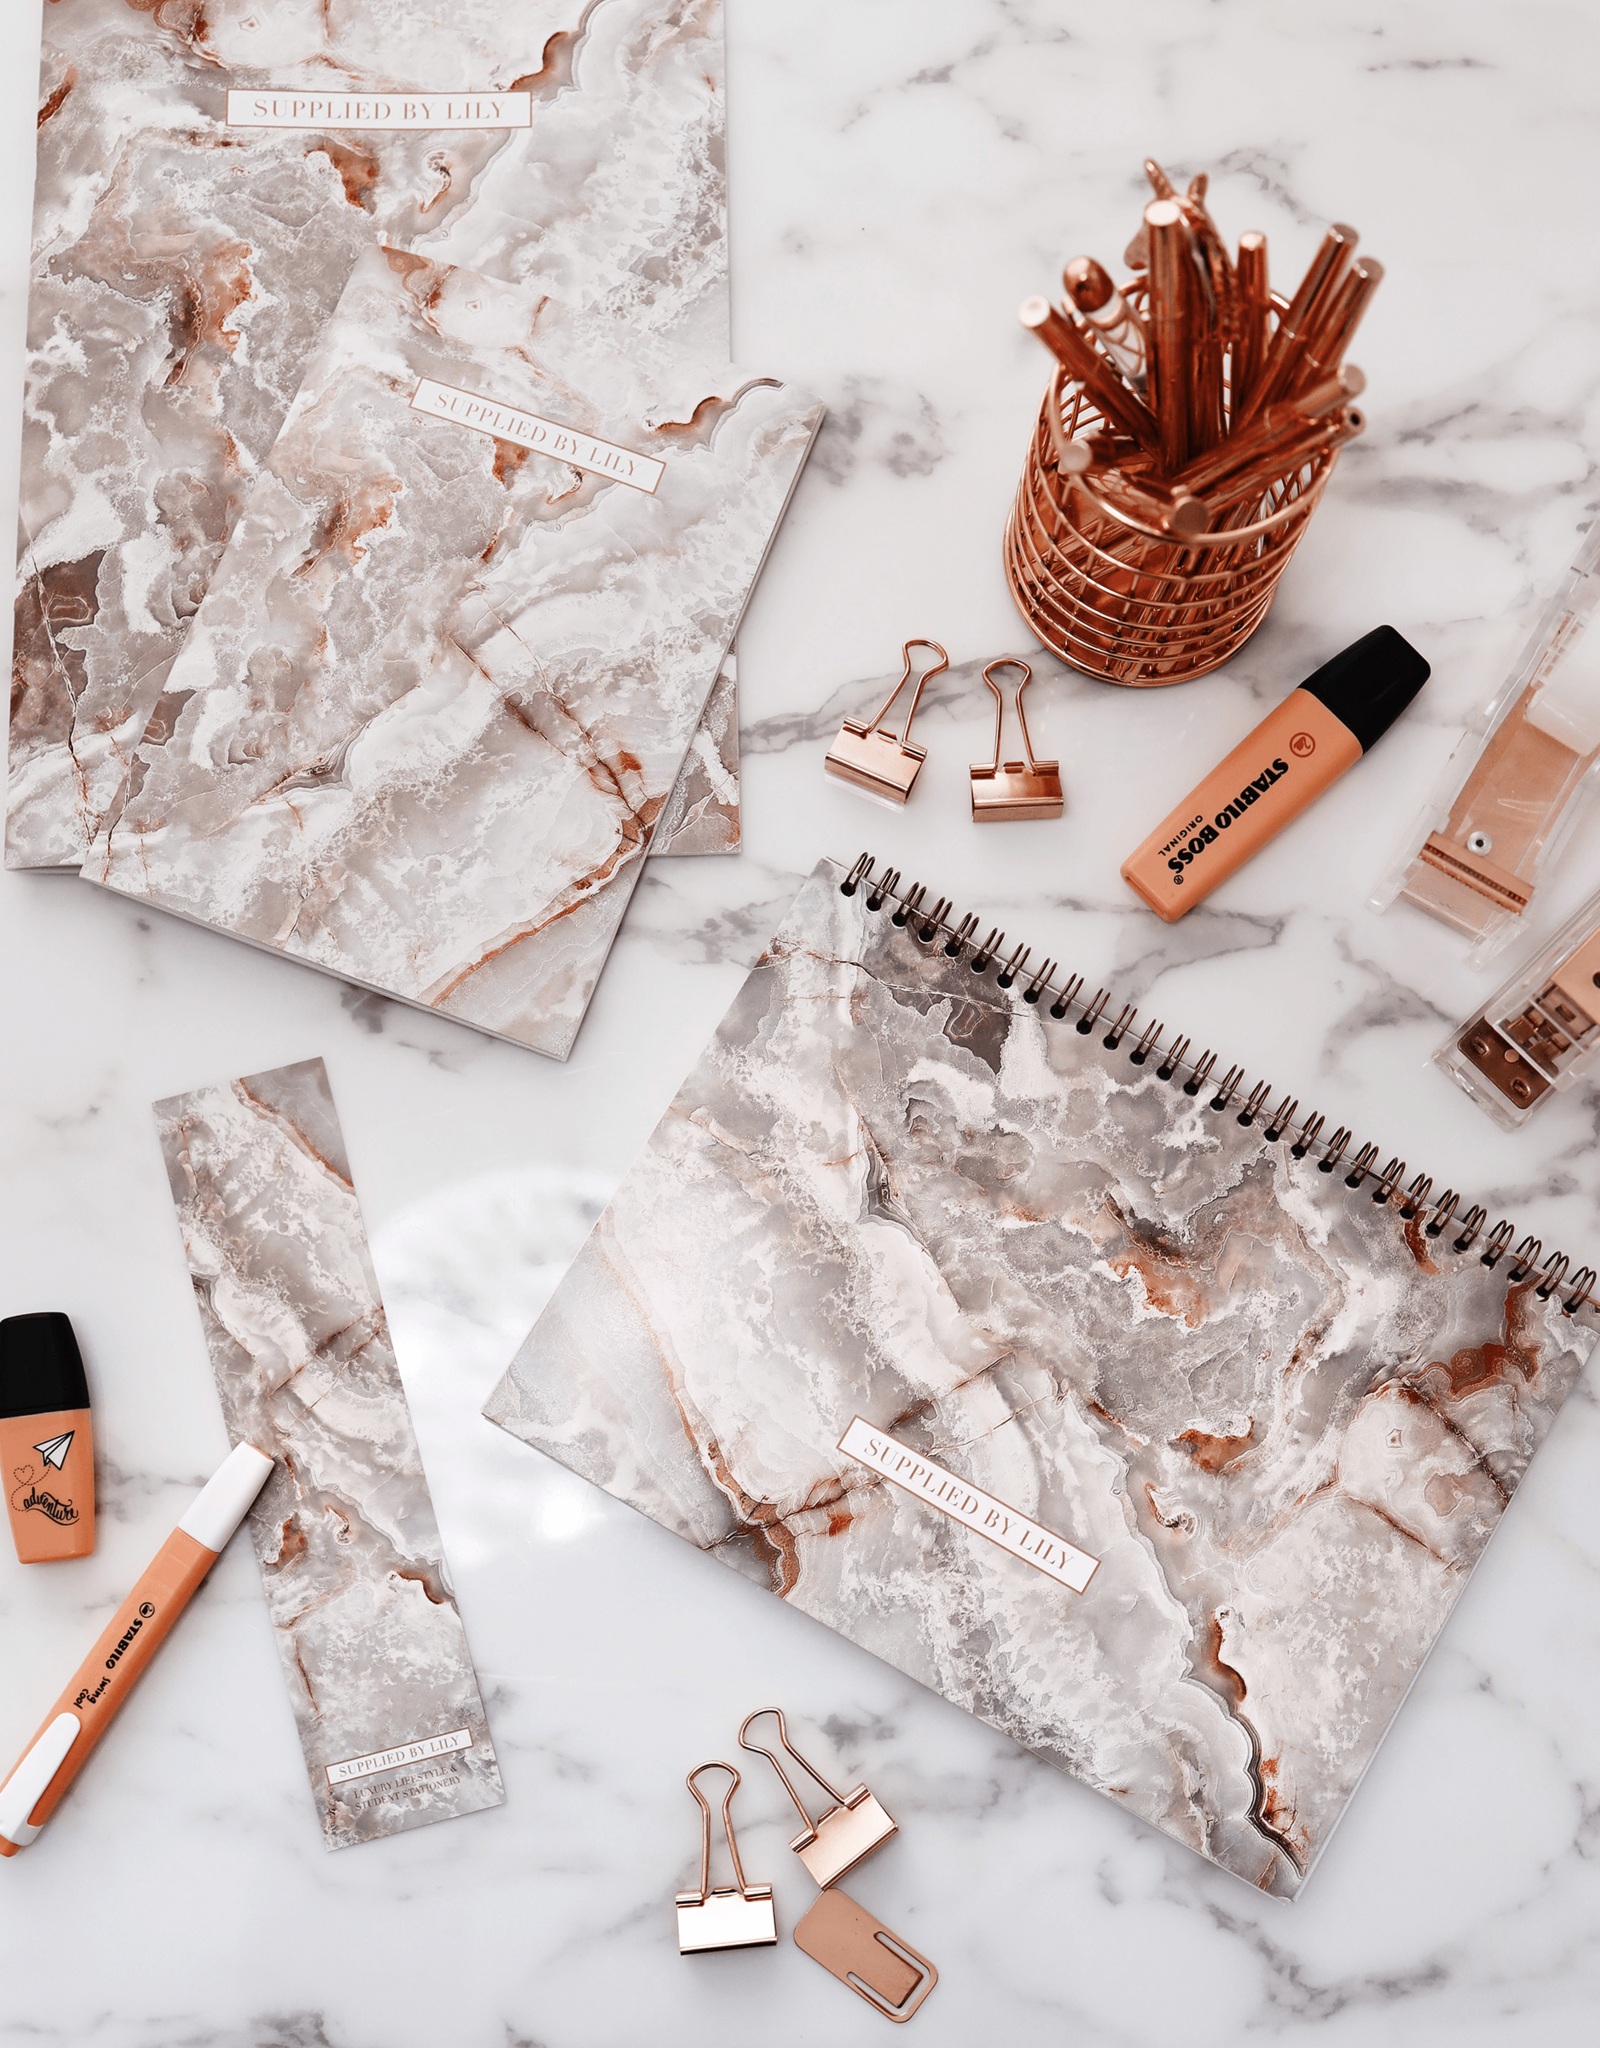 Supplied by Lily Stationery The Luxurious Yashma Bundle